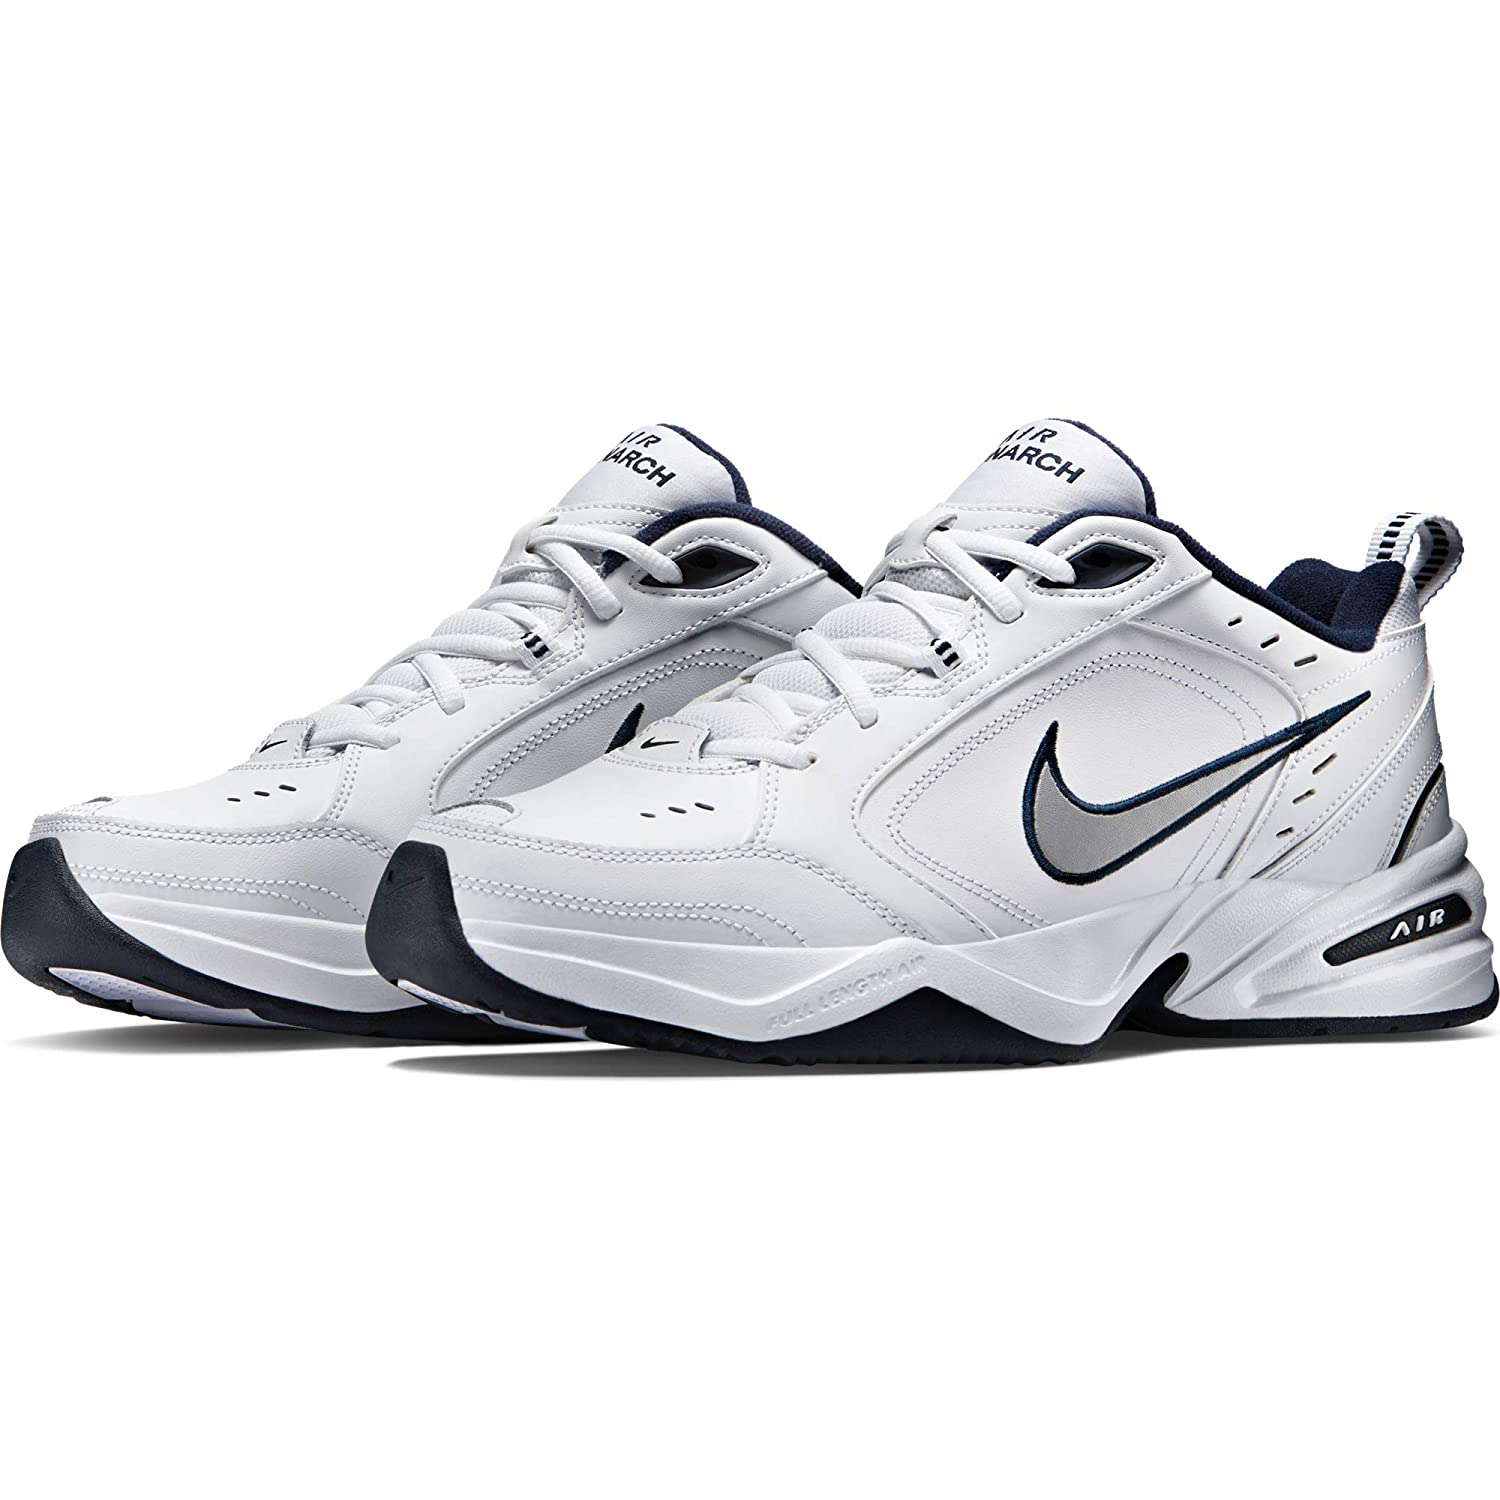 cfb8f80cd15d6 Nike Men's Air Monarch Iv Cross Trainer